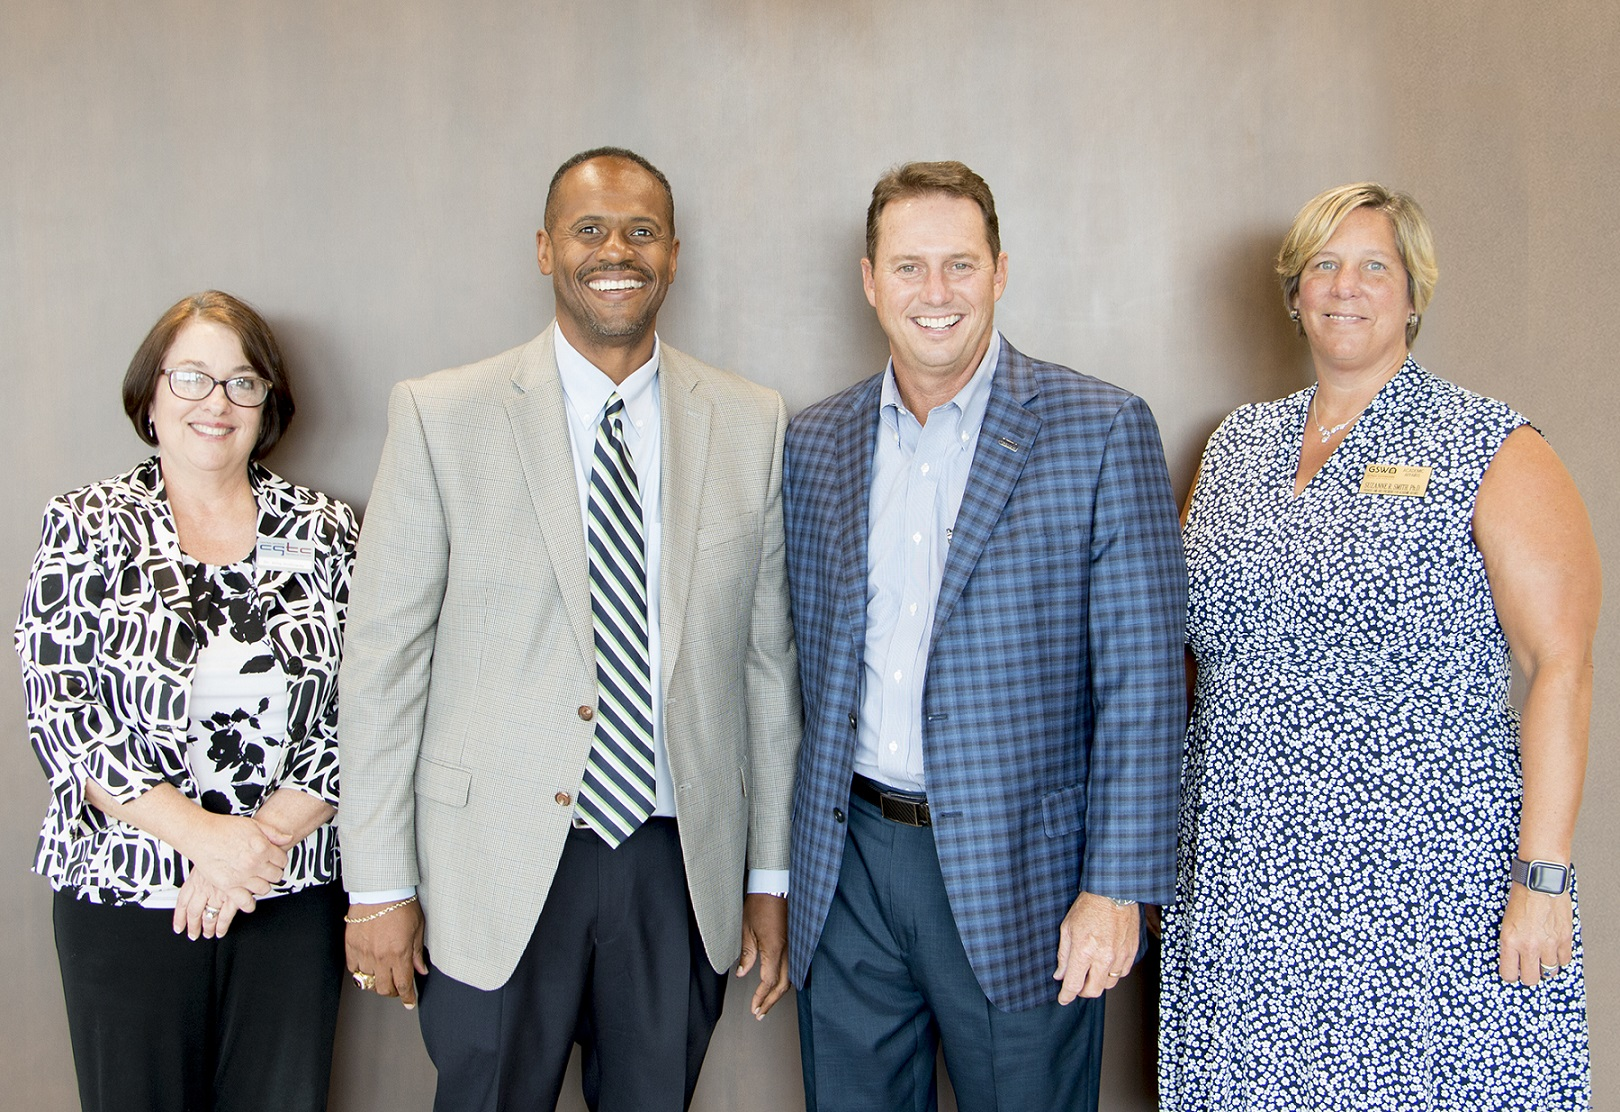 (From left to right) Dr. Amy Holloway, vice president of Academic Affairs at CGTC and Dr. Ivan H. Allen, president of CGTC, join GSW president, Dr. Neal Weaver, and Dr. Suzanne R. Smith, provost and vice president for Academic Affairs, following the signing of the two agreements.